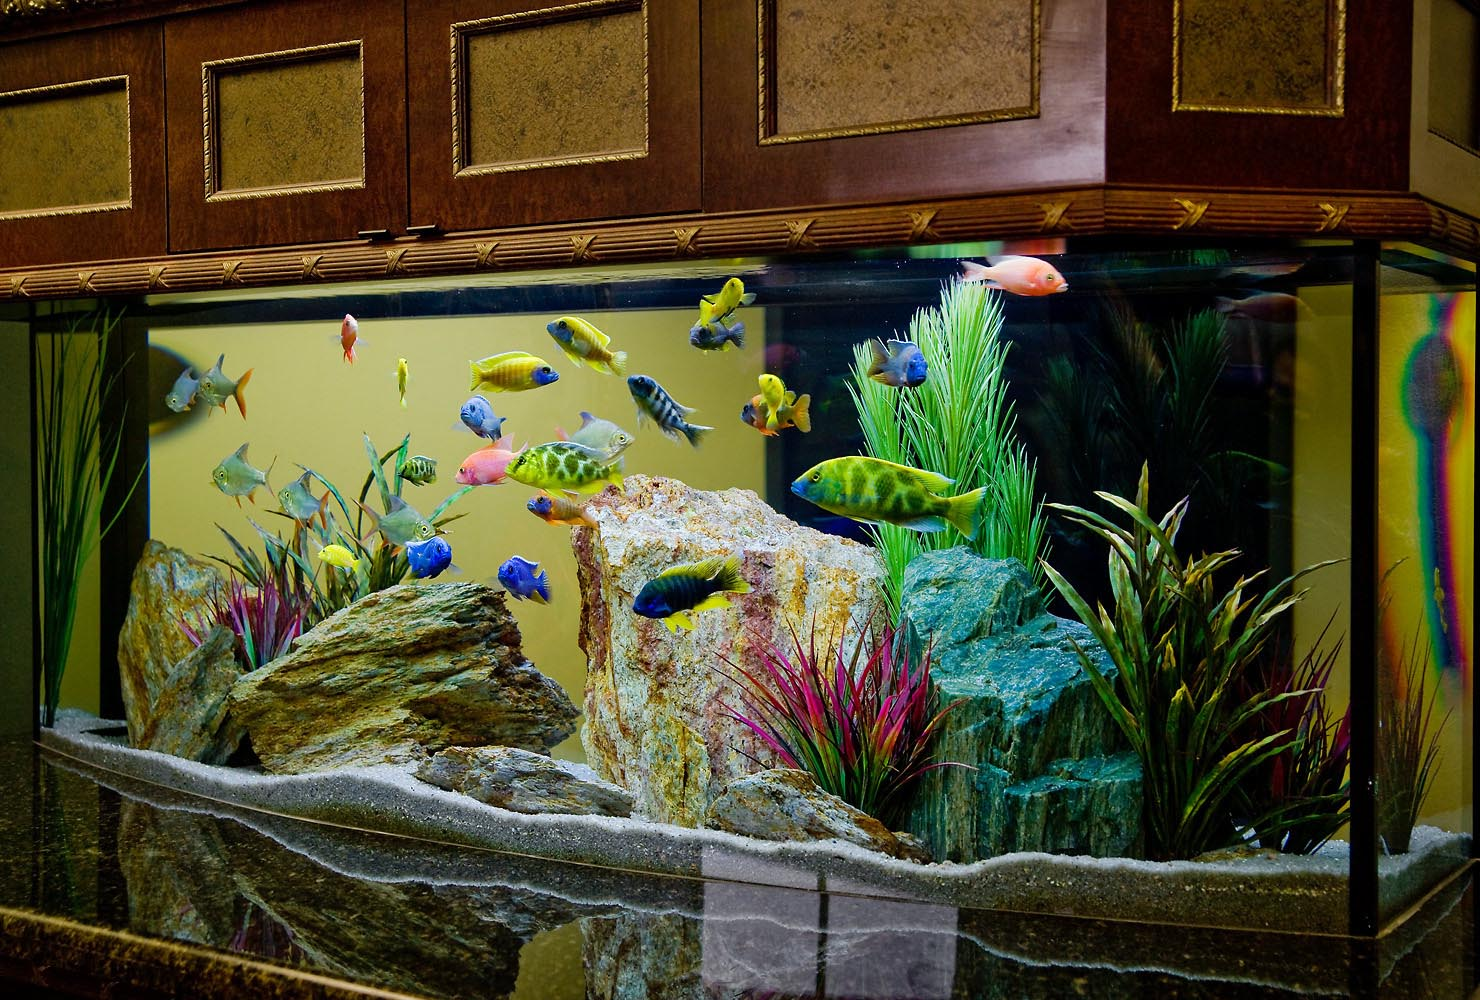 live freshwater aquarium fish 2 29 gal freshwater aquarium design ideas - Freshwater Aquarium Design Ideas